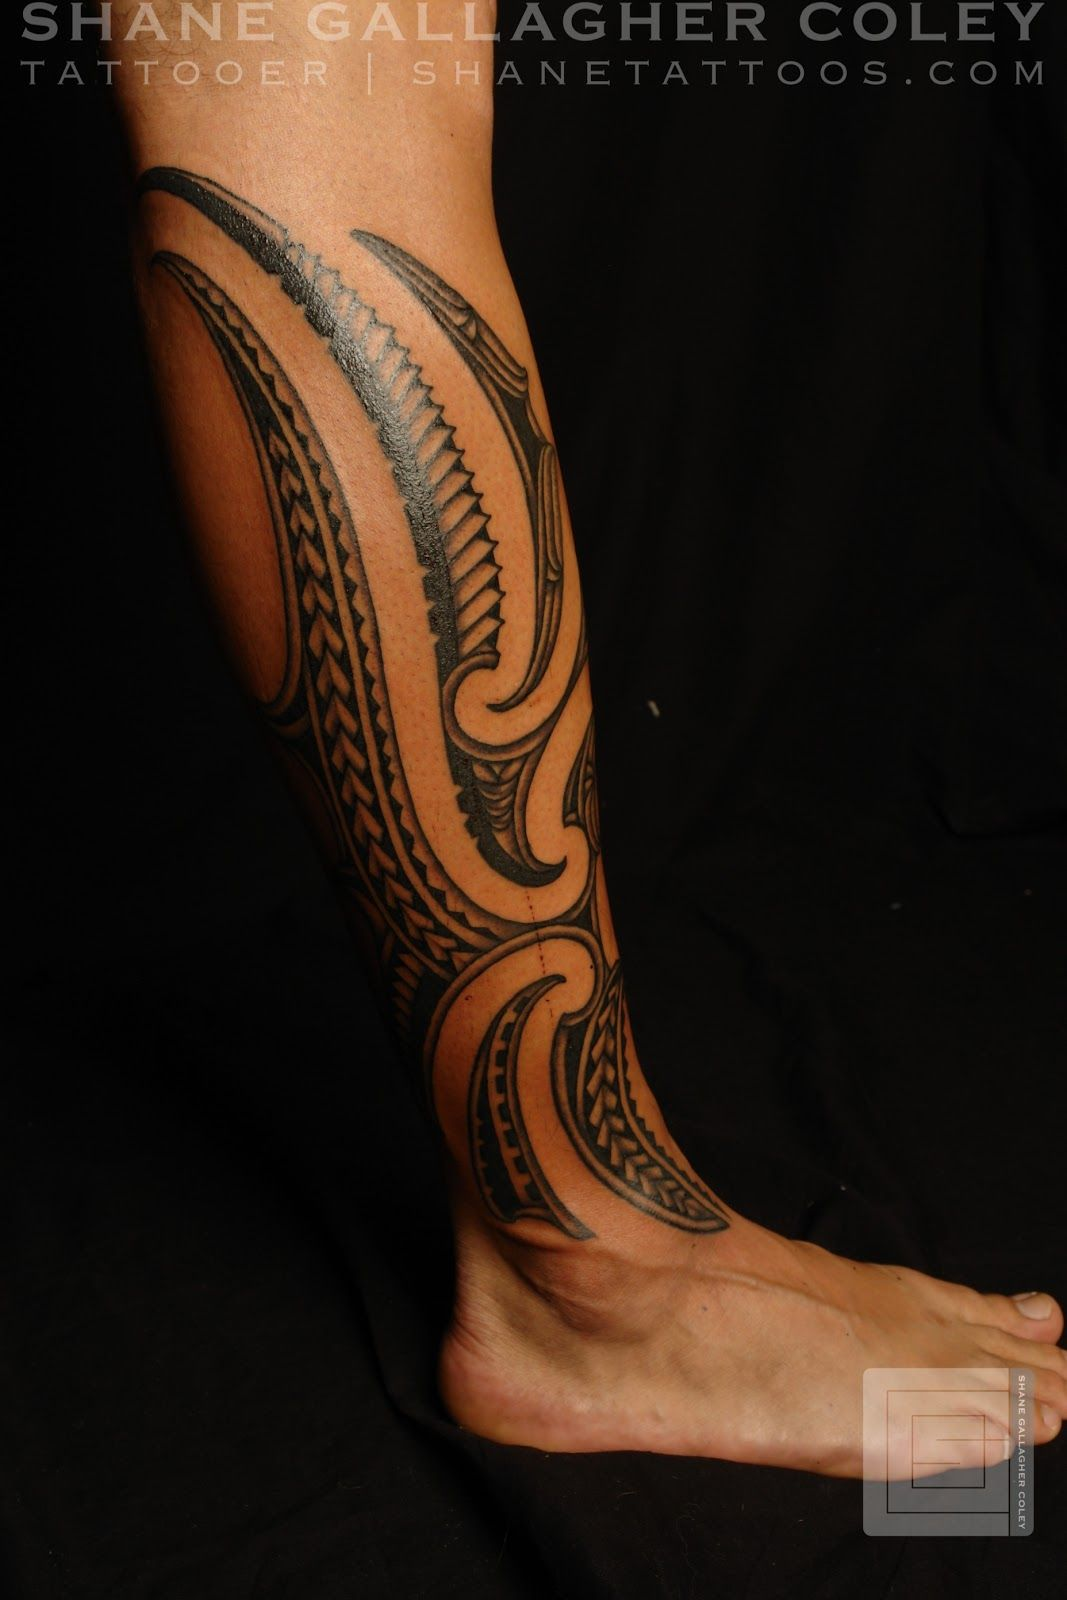 Maori Lower Back Tattoo: Maori/Polynesian Fusion Calf Tattoo